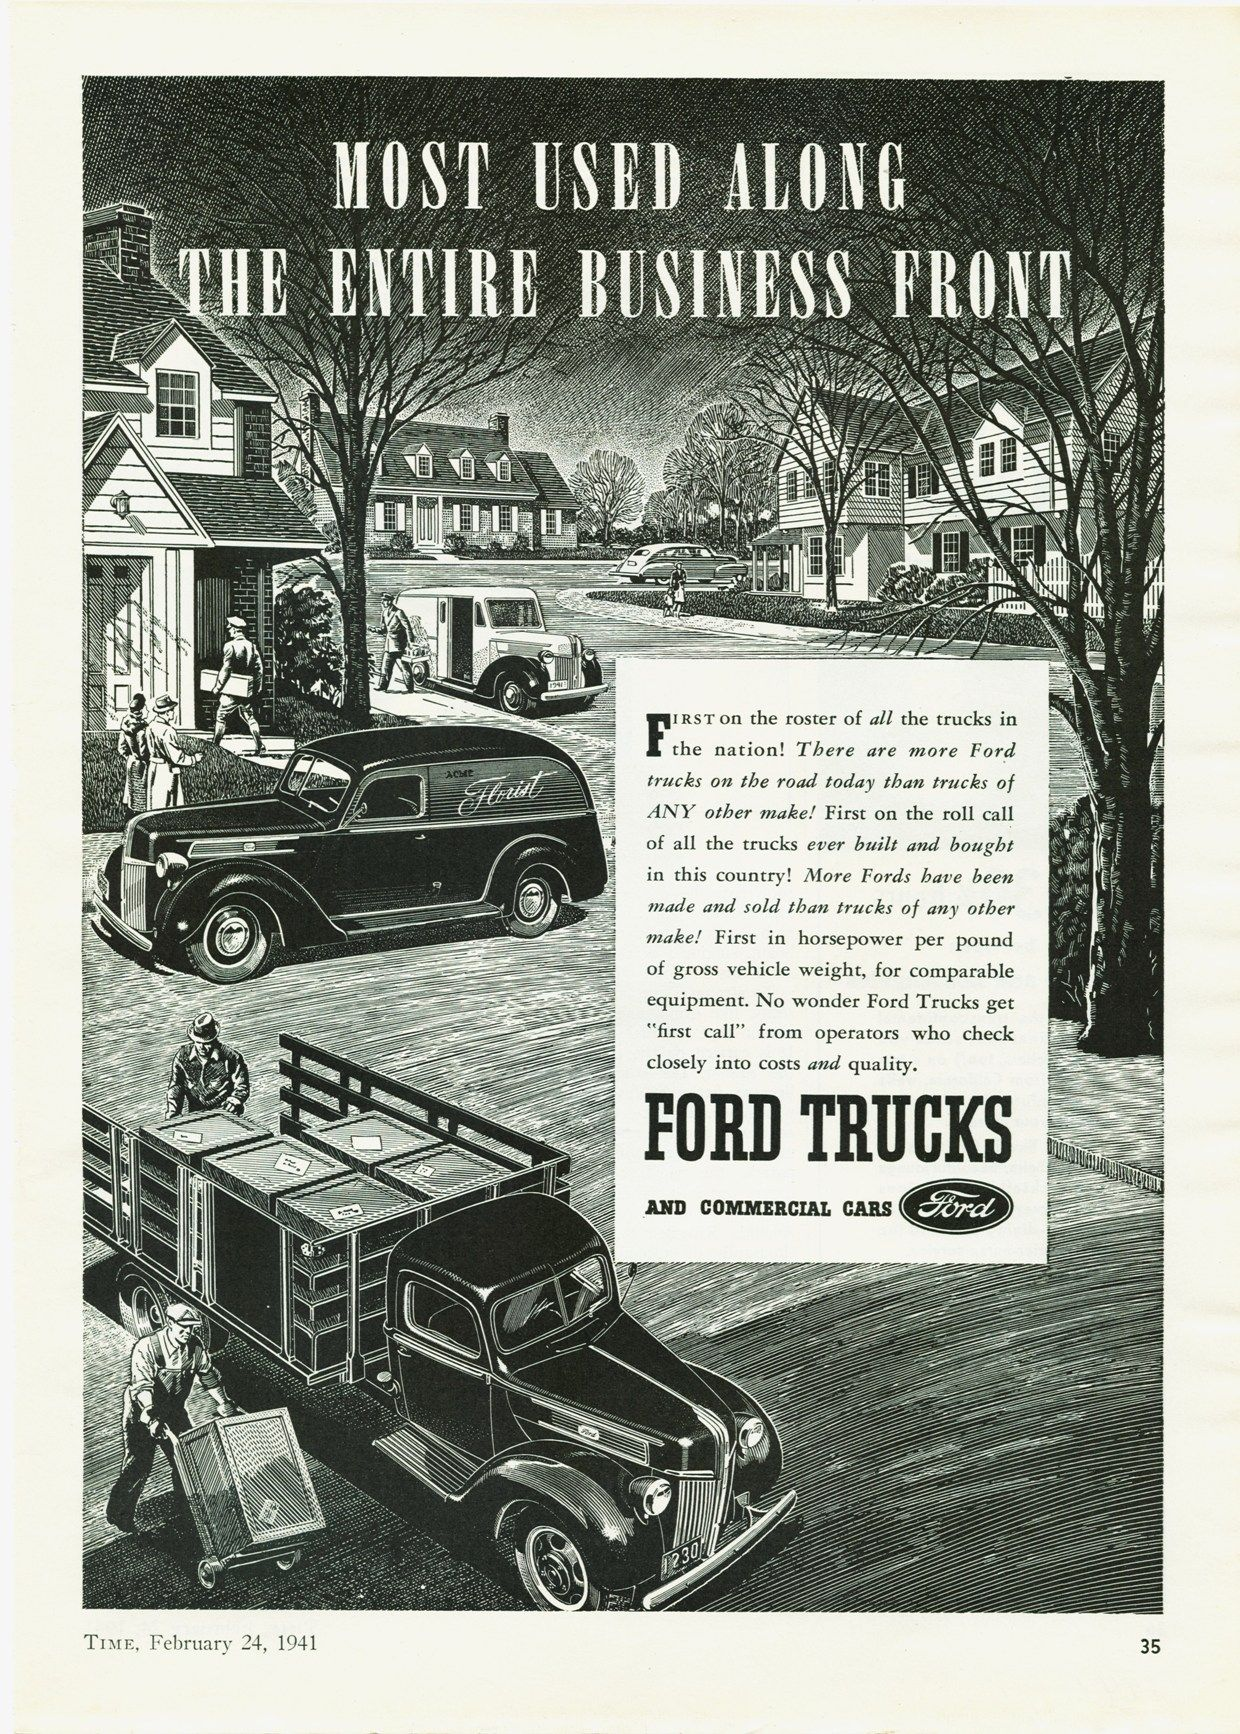 1941 Ford Truck Ad-02 | My Driveway | Pinterest | Ford trucks and Ford